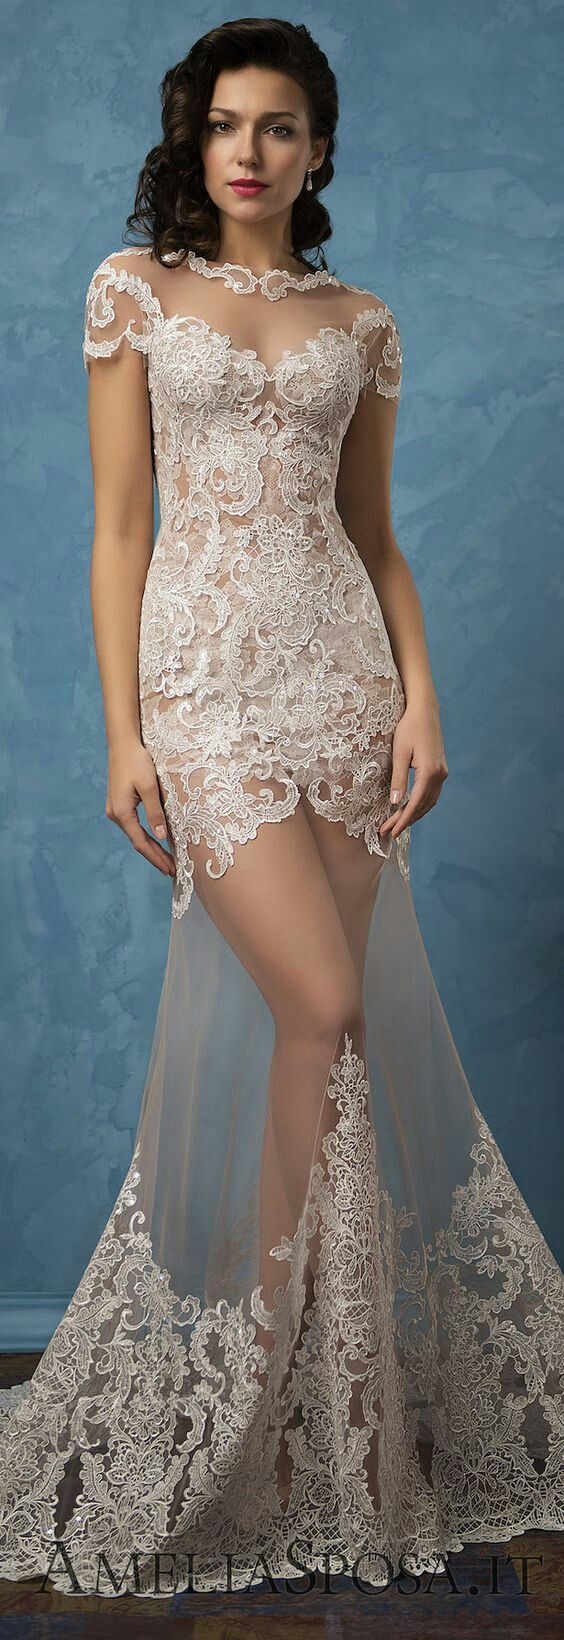 Alfred angelo dream maker wedding dress   best Wedding images on Pinterest  Homecoming dresses straps